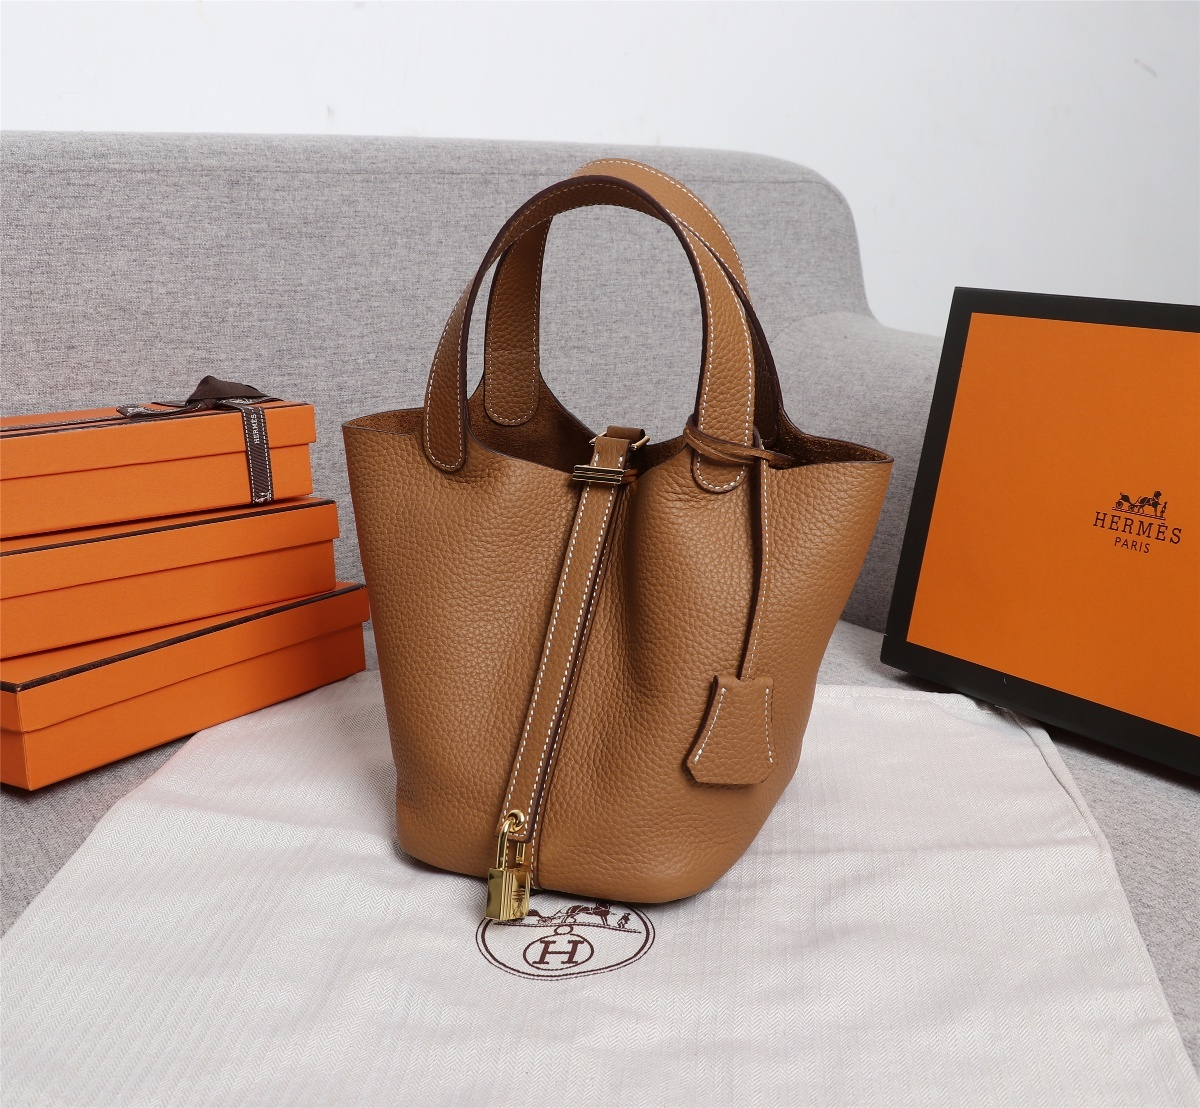 Replica Hermes Picotin Lock Bag 18cm and 22cm Coffee with Gold Hardware